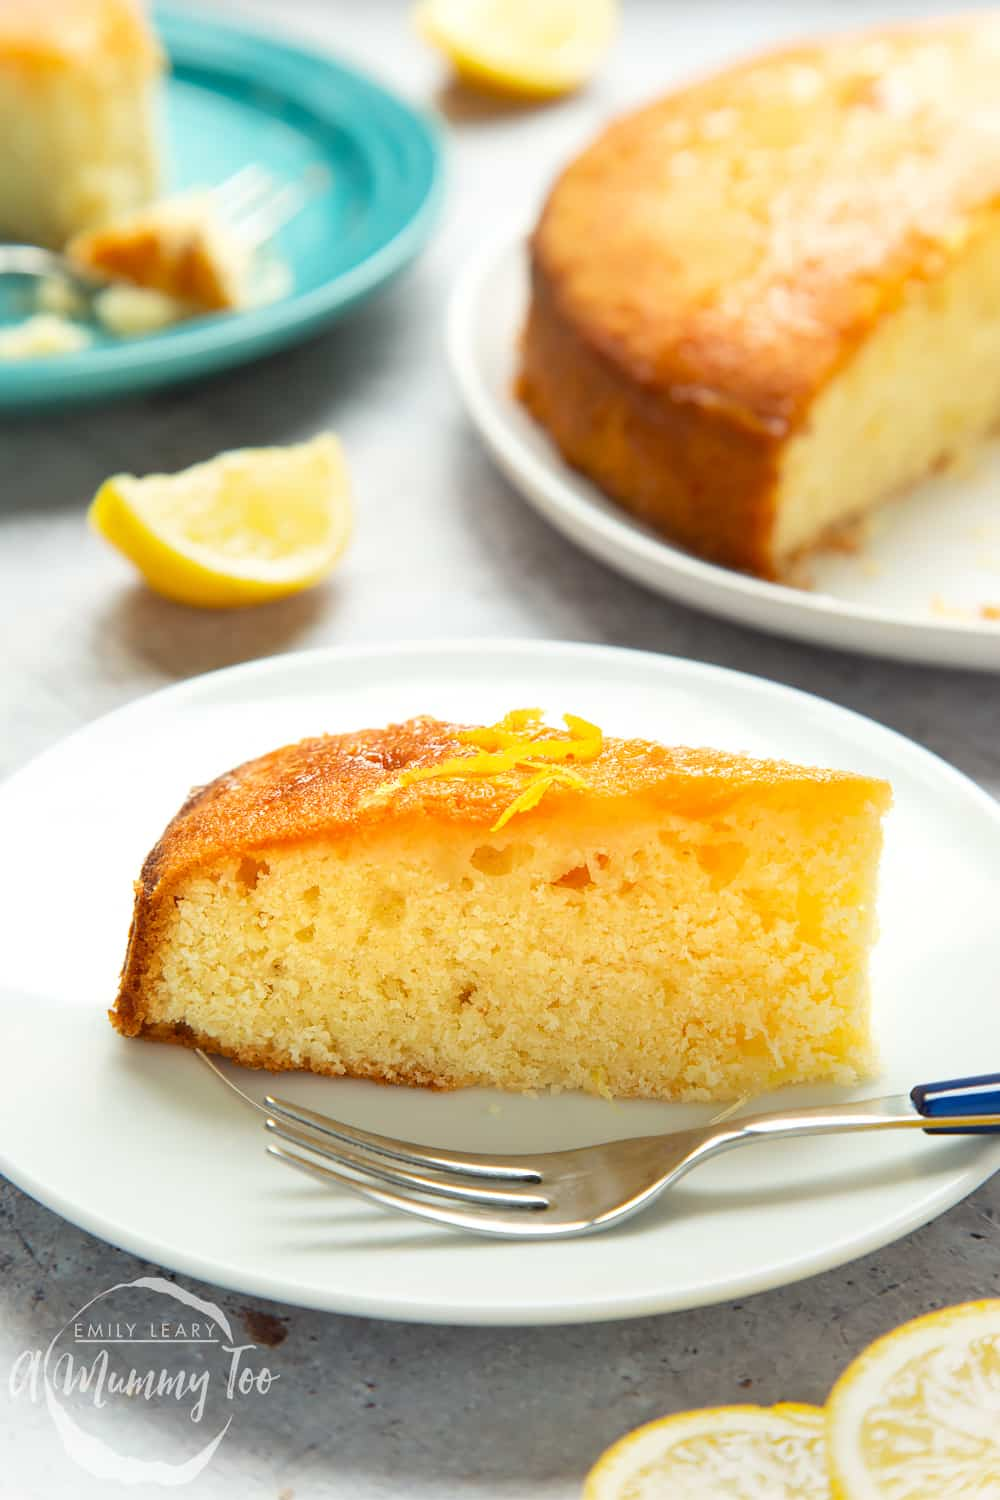 A slice of lemon drizzle cake served on a plate